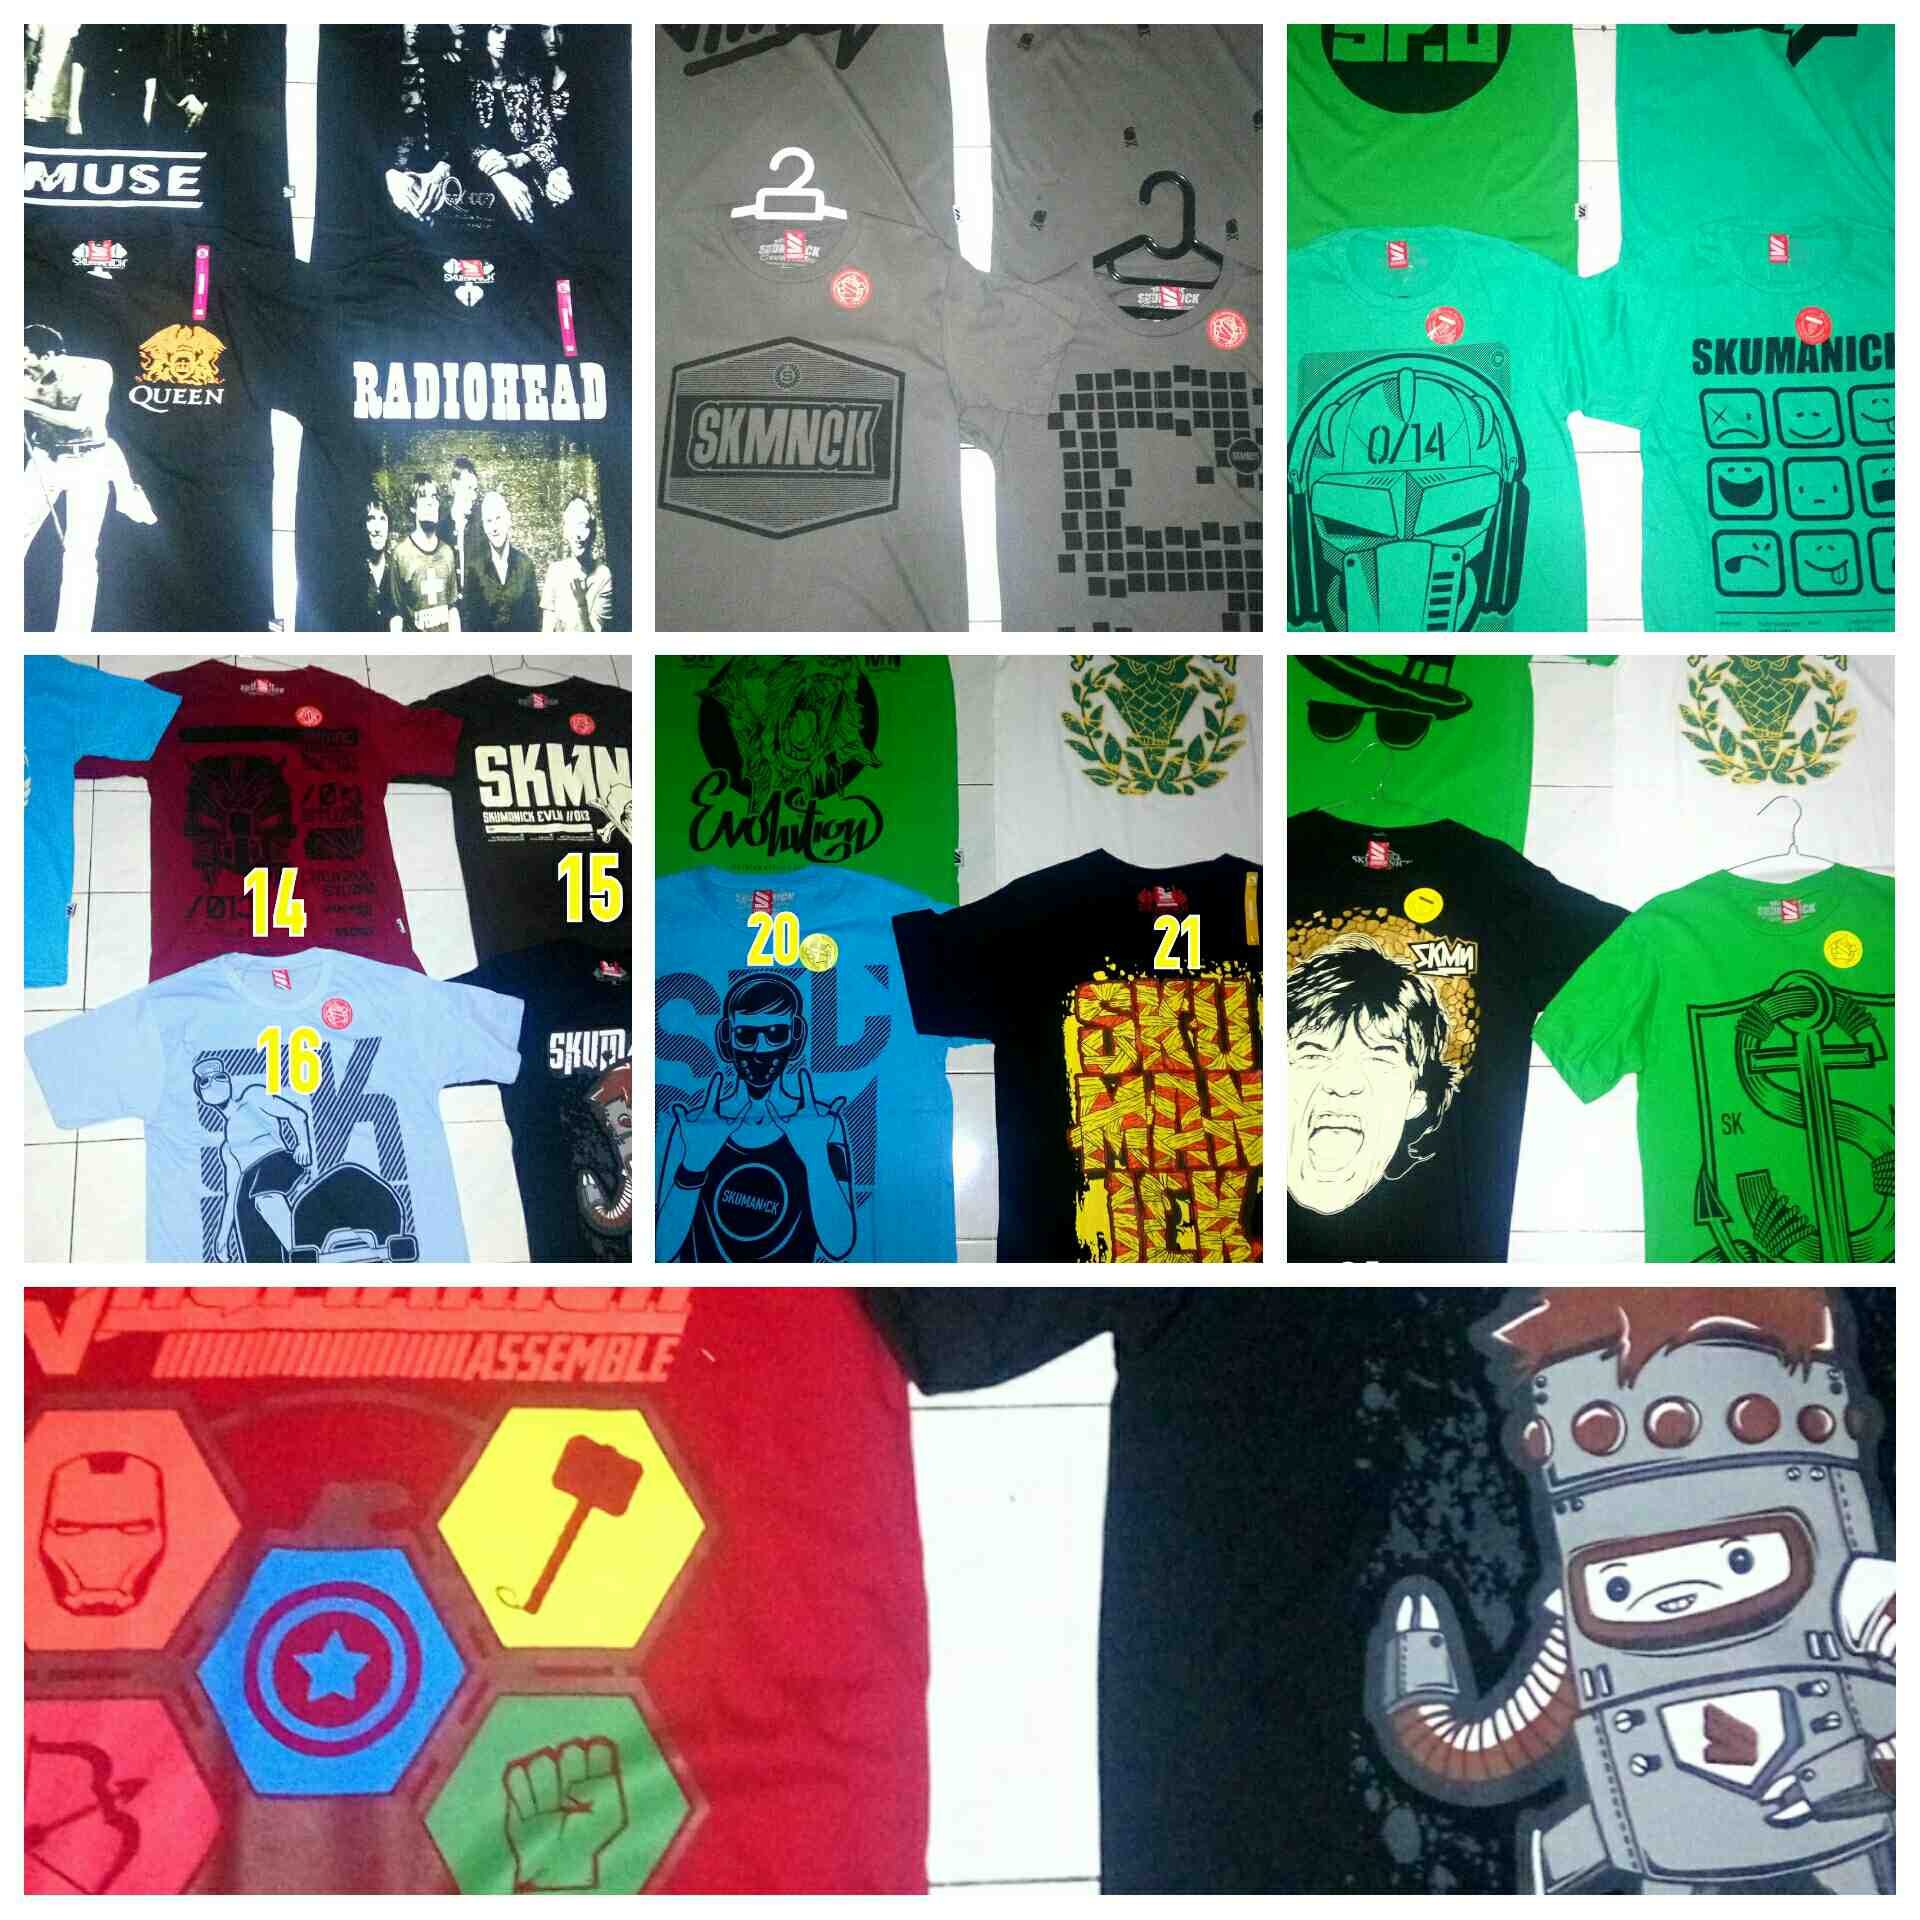 Foto: Grosir Kaos Distro Original Branded Skumanick